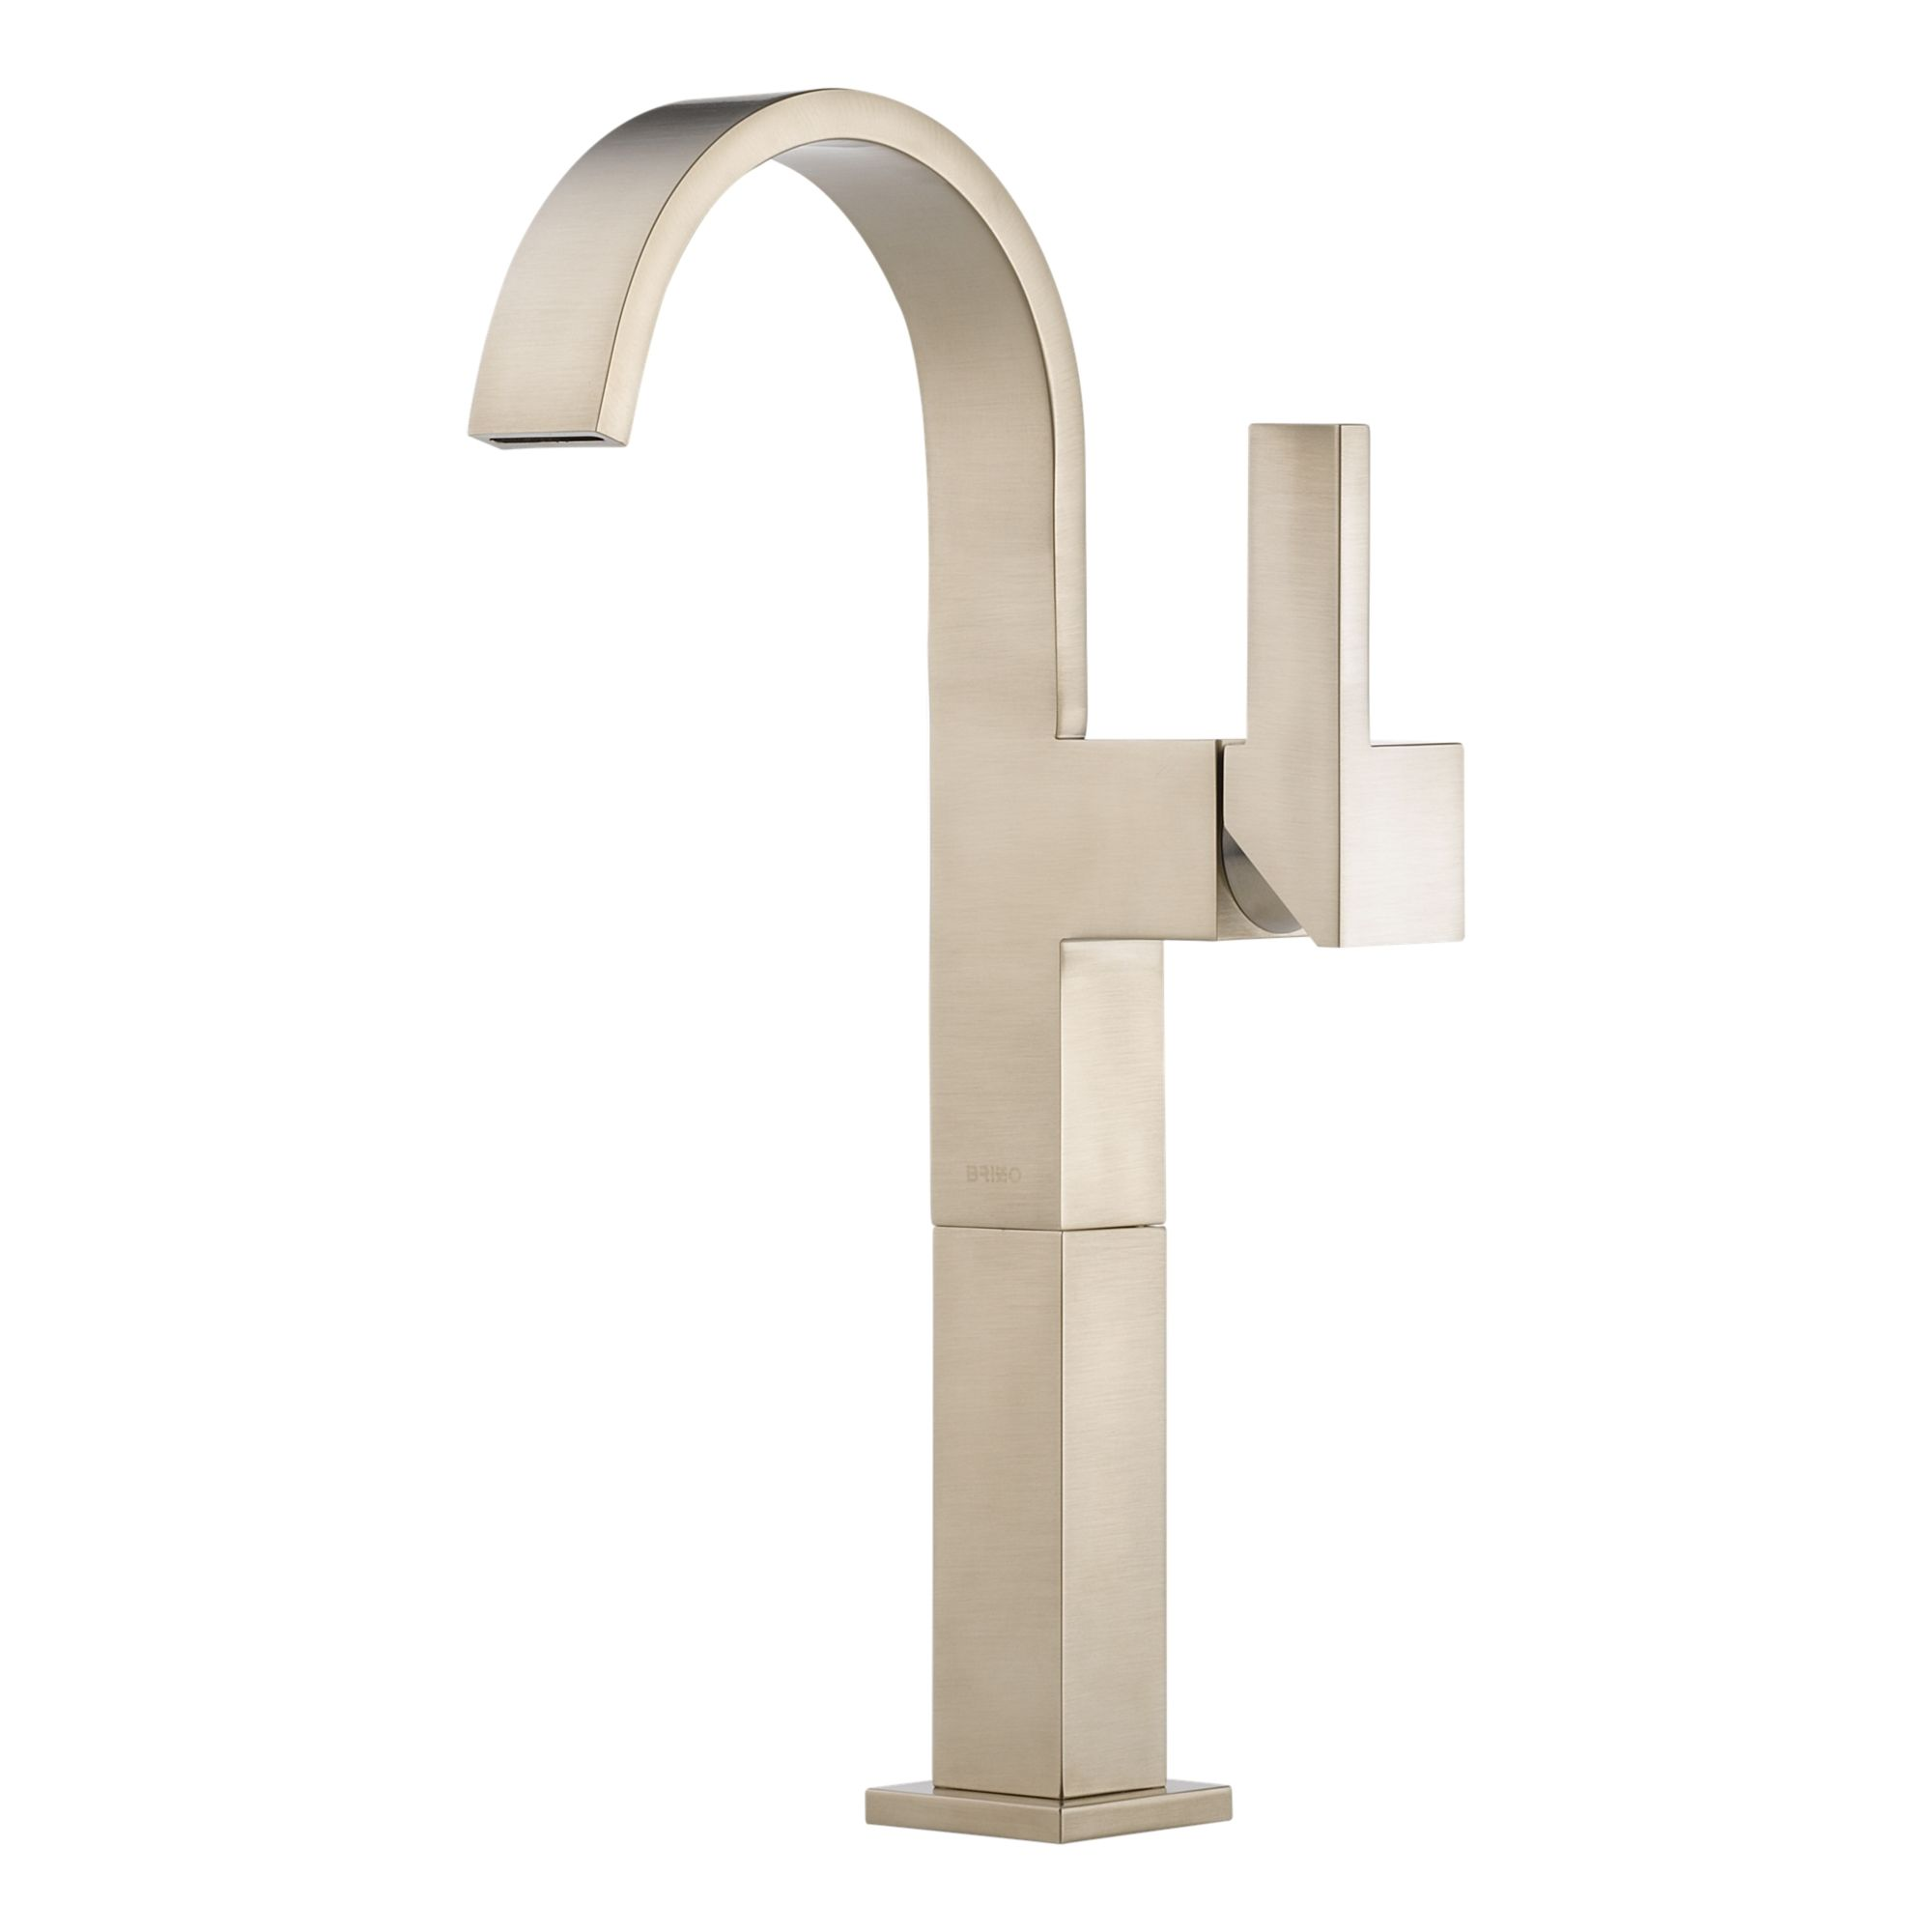 of companies brands vuelo stunning fixtures bathroom pc size siderna ssco belo kitchen reviews full faucet faucets brizo end high